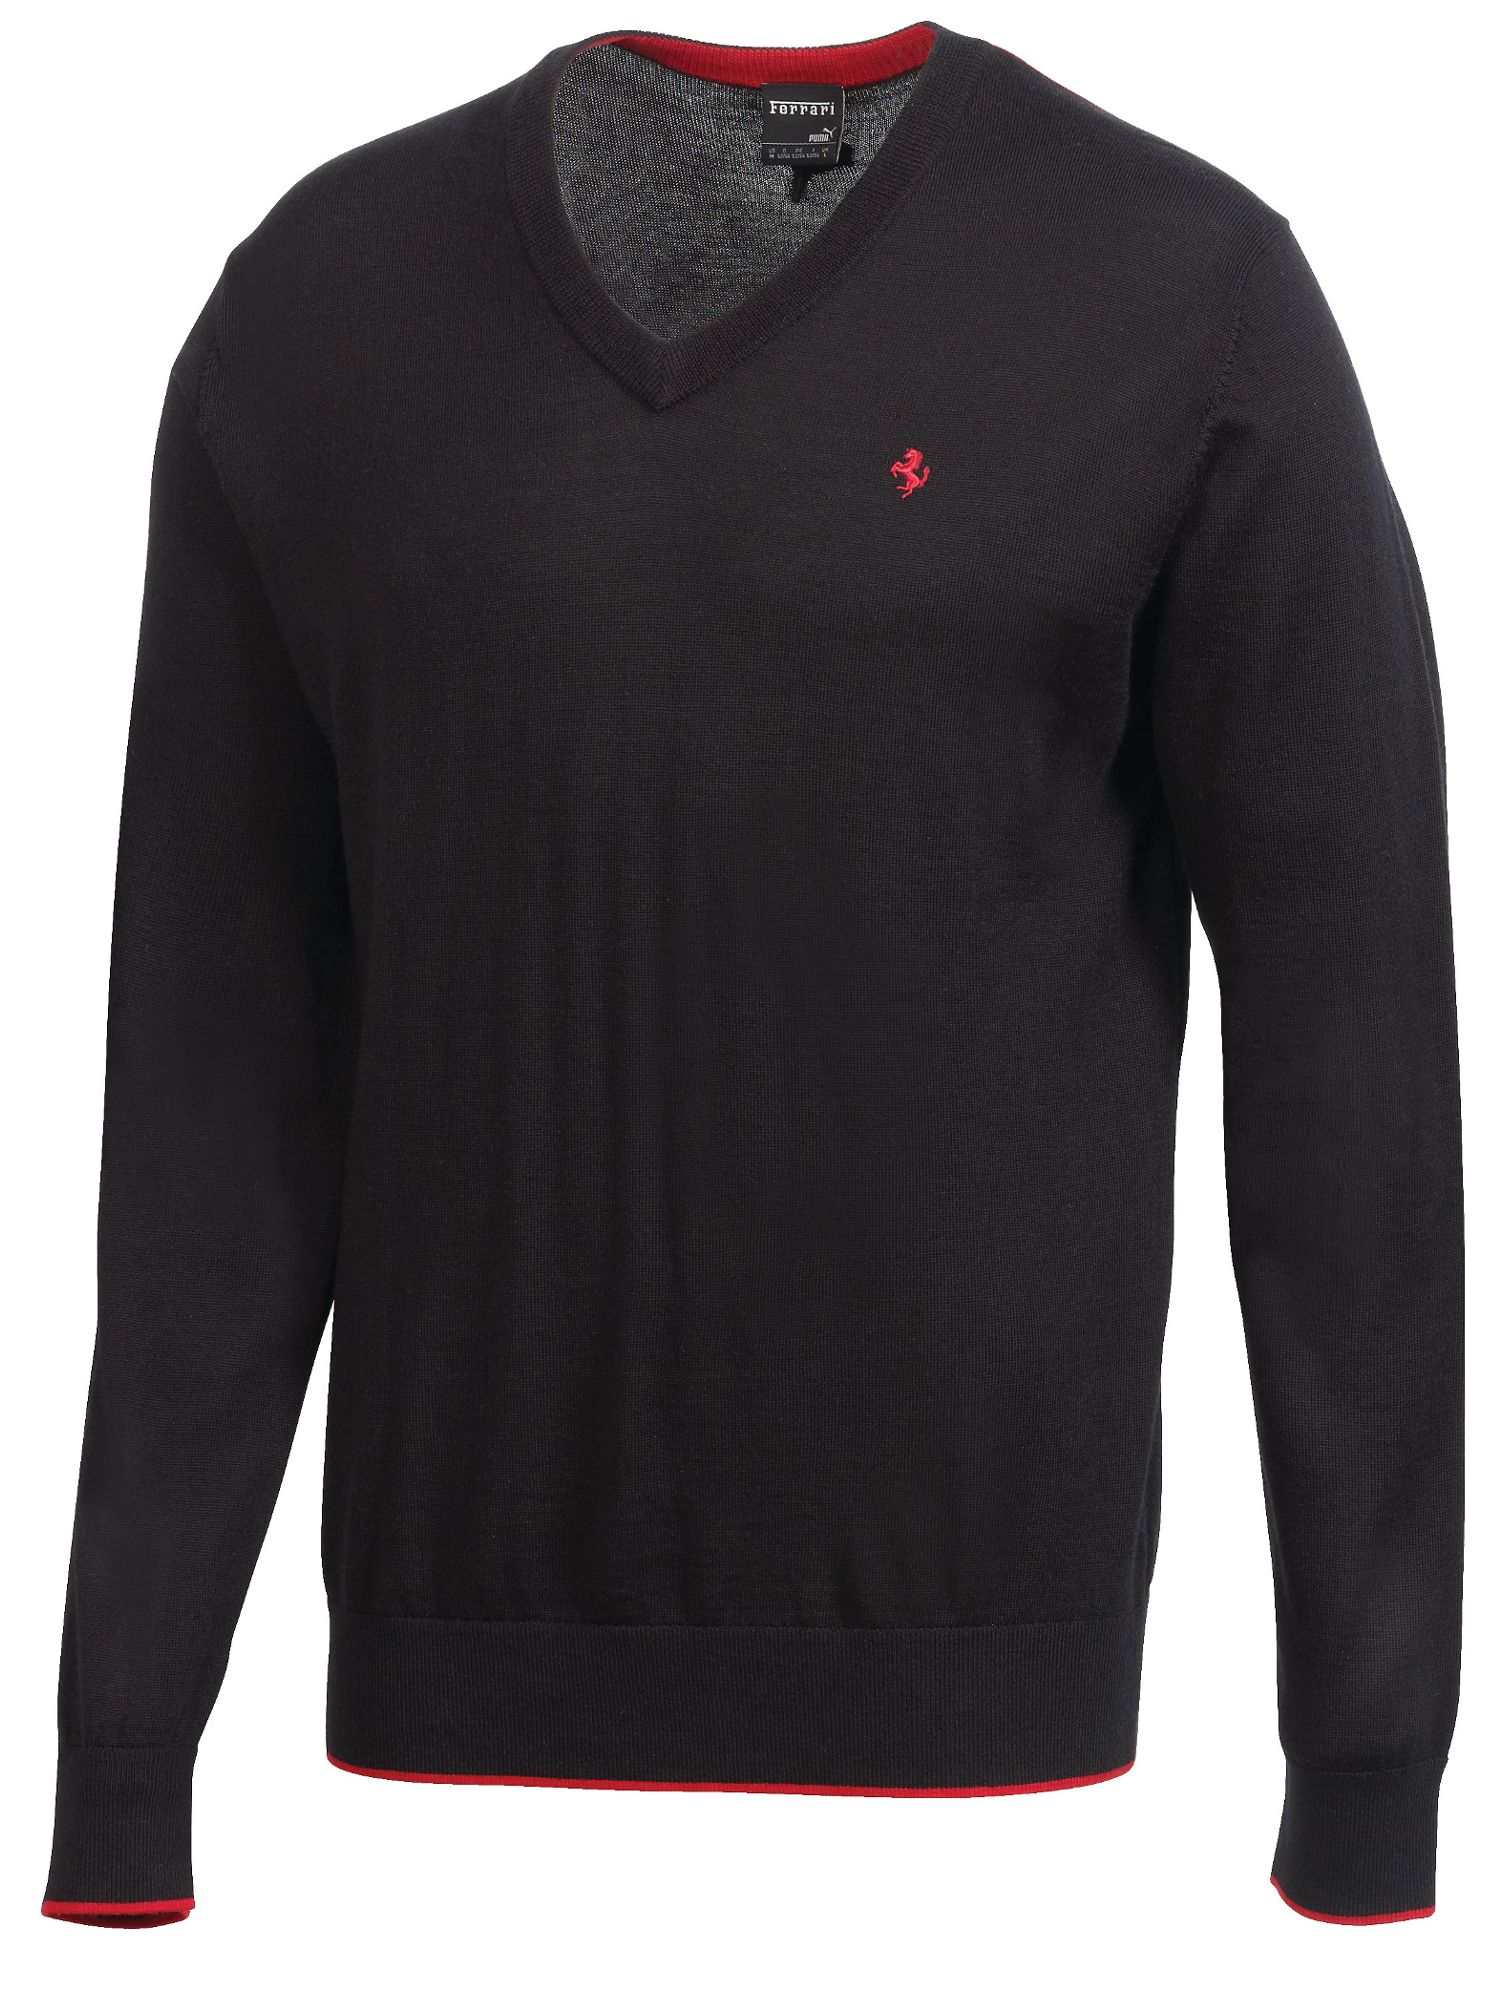 Ferrari merino sweater